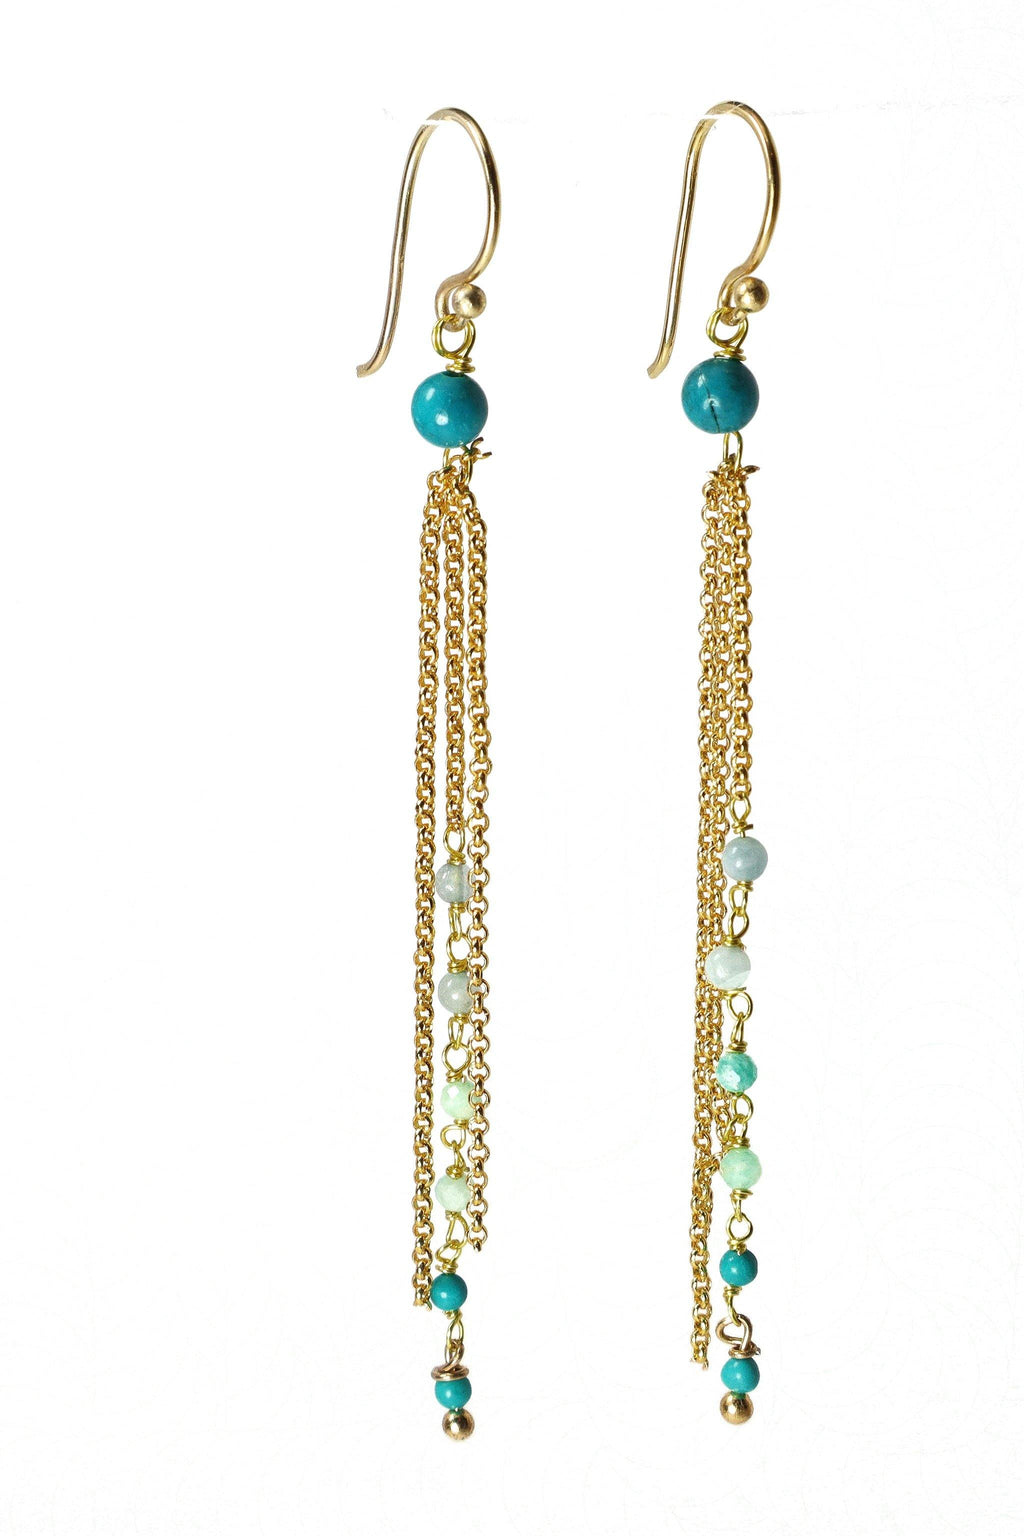 These earrings are a triple strand of rosary style gemstones and chains. The round aquamarine, jade, and turquoise gemstones are wired in a graduated tone from light to dark. These earrings are handmade with love in Thailand. This is a Fairtrade Product.